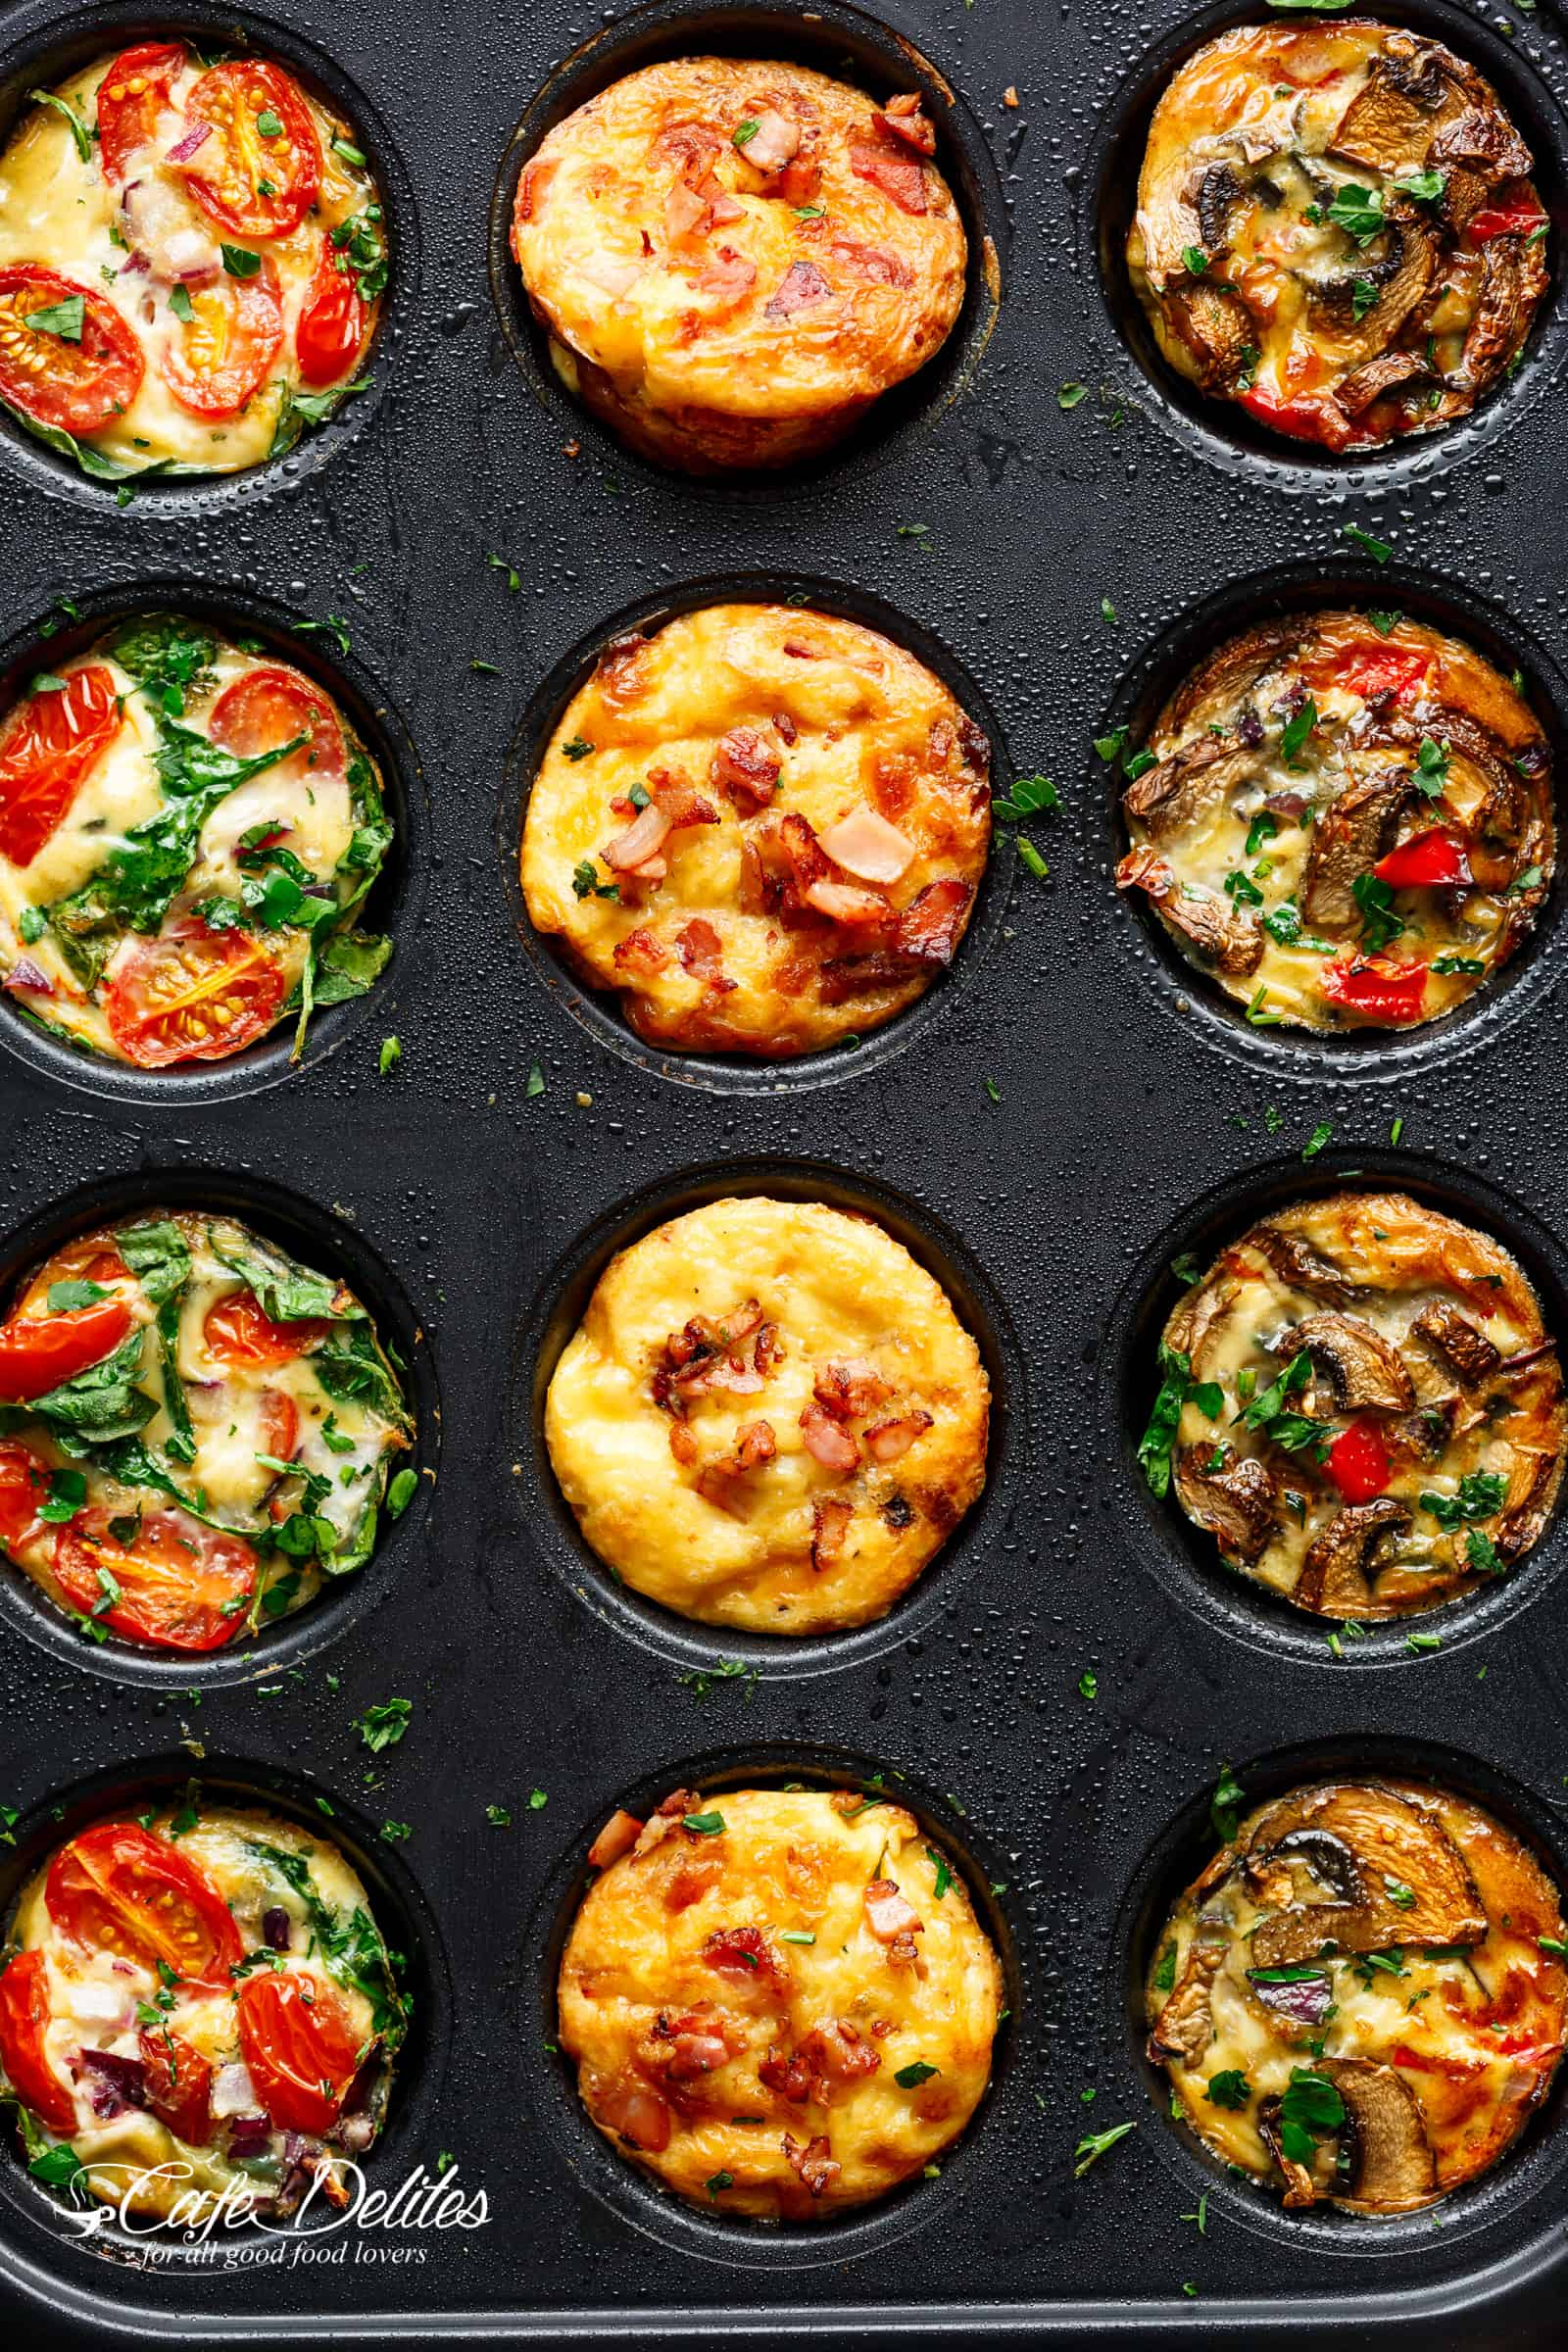 Breakfast Egg Muffins 3 Ways (Meal Prep) from cafedelites.com on foodiecrush.com